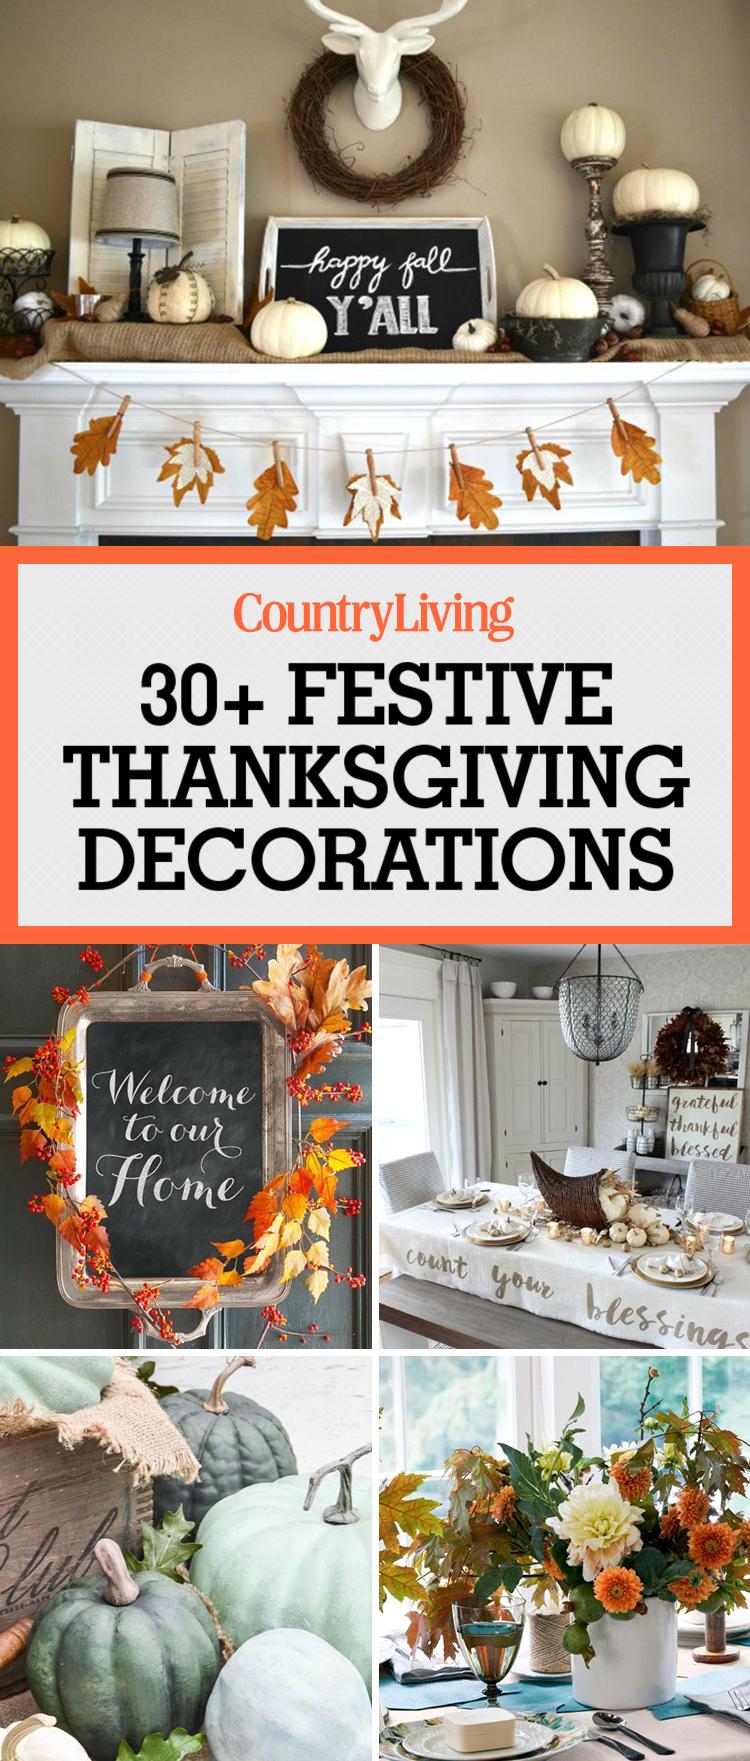 Make This Thanksgiving Your Coziest Yet With These Festive